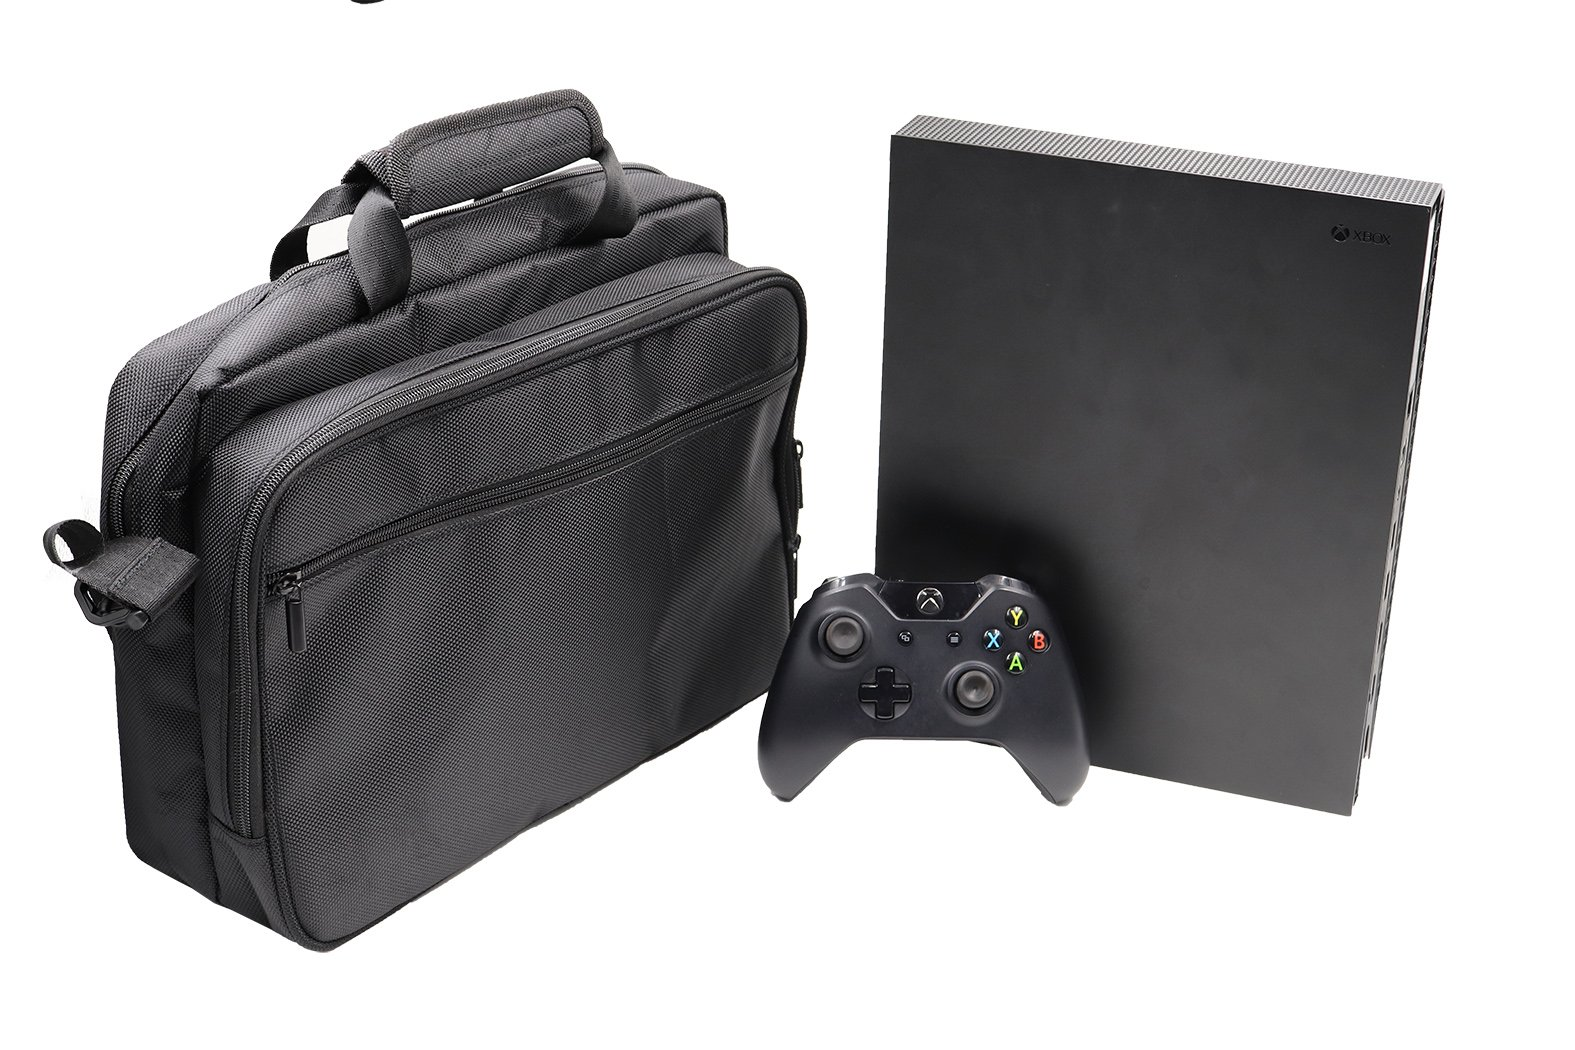 J&TOP Protective Travel Carry Case For Xbox One X